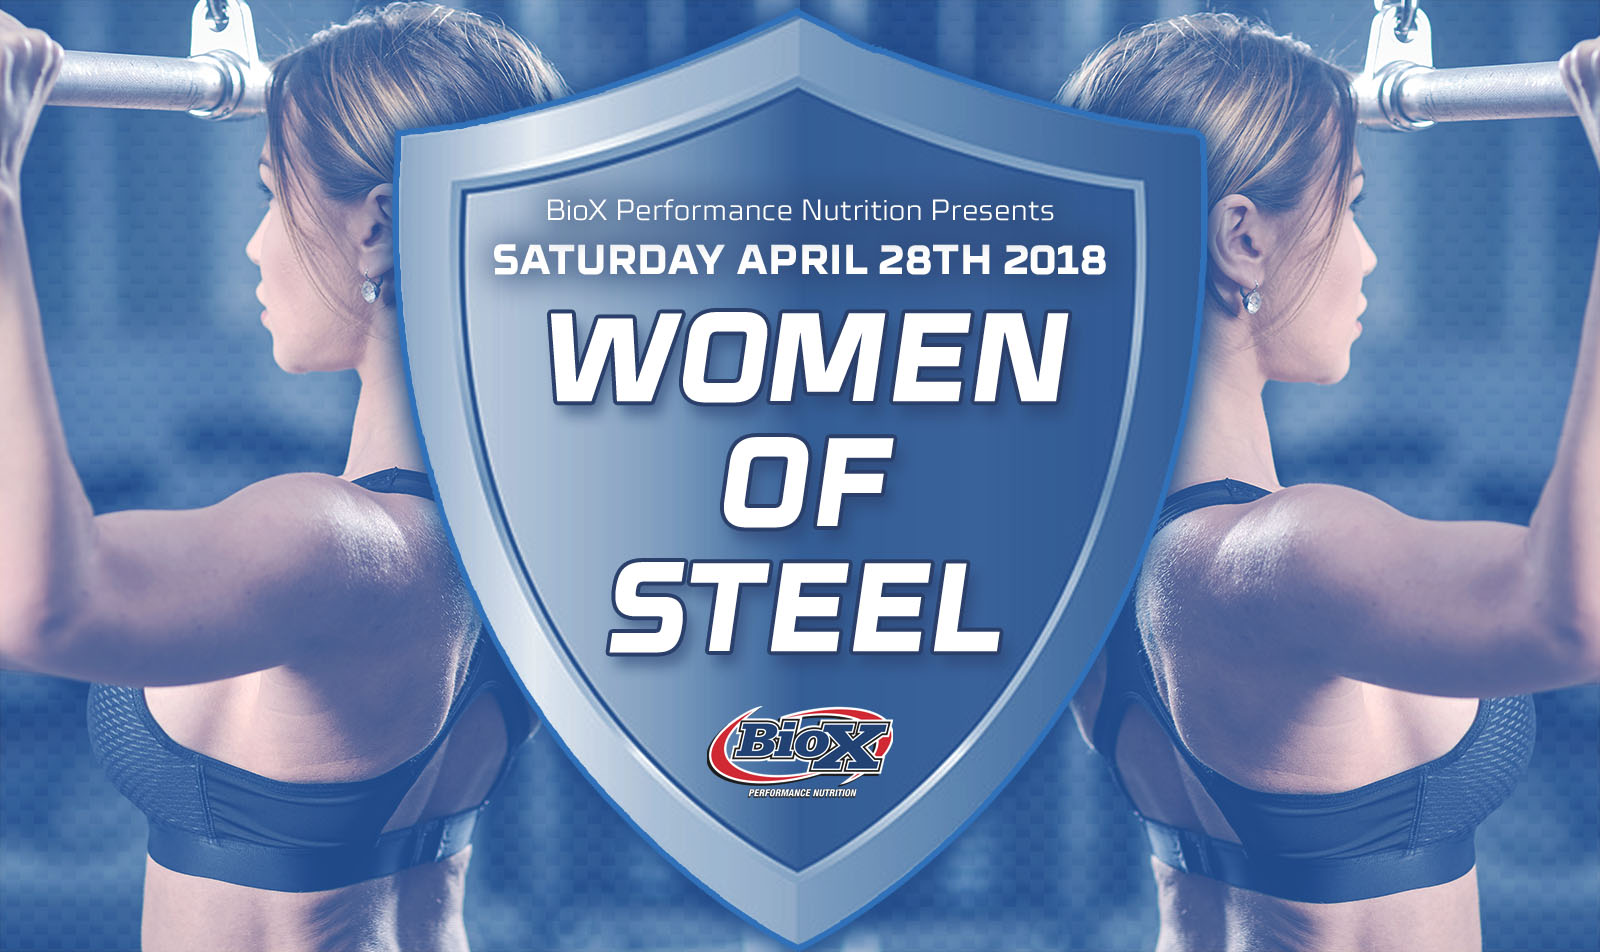 Just Announced! #WomenOfSteel Get A Grip Edition